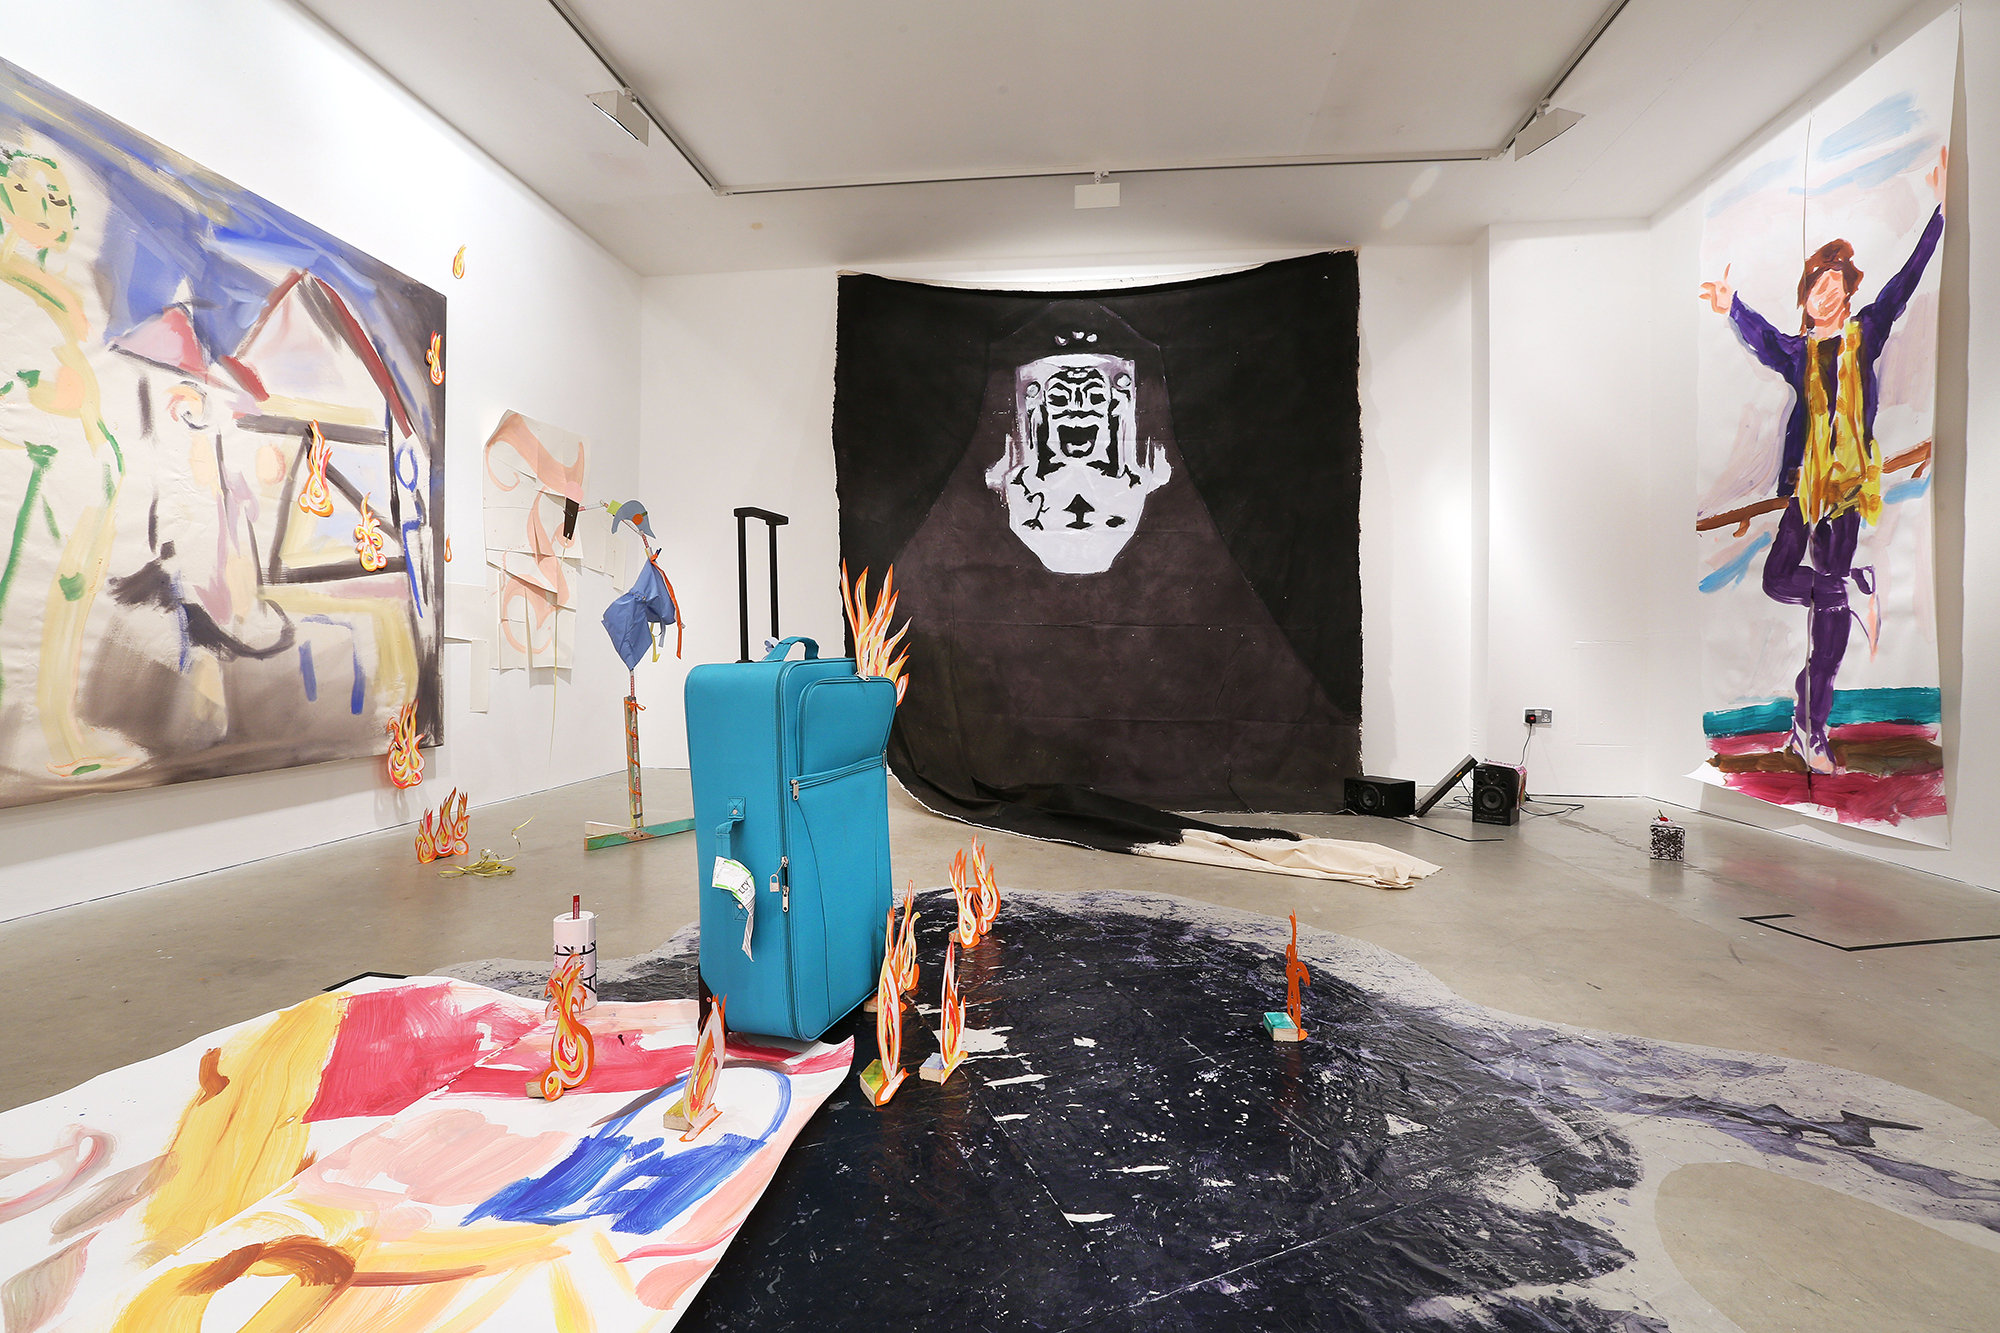 Another Bandwagon, 2015, hobbypopMUSEUM, Vilma Gold, London, installation view. Another Bandwagon , hobbypopMUSEUM